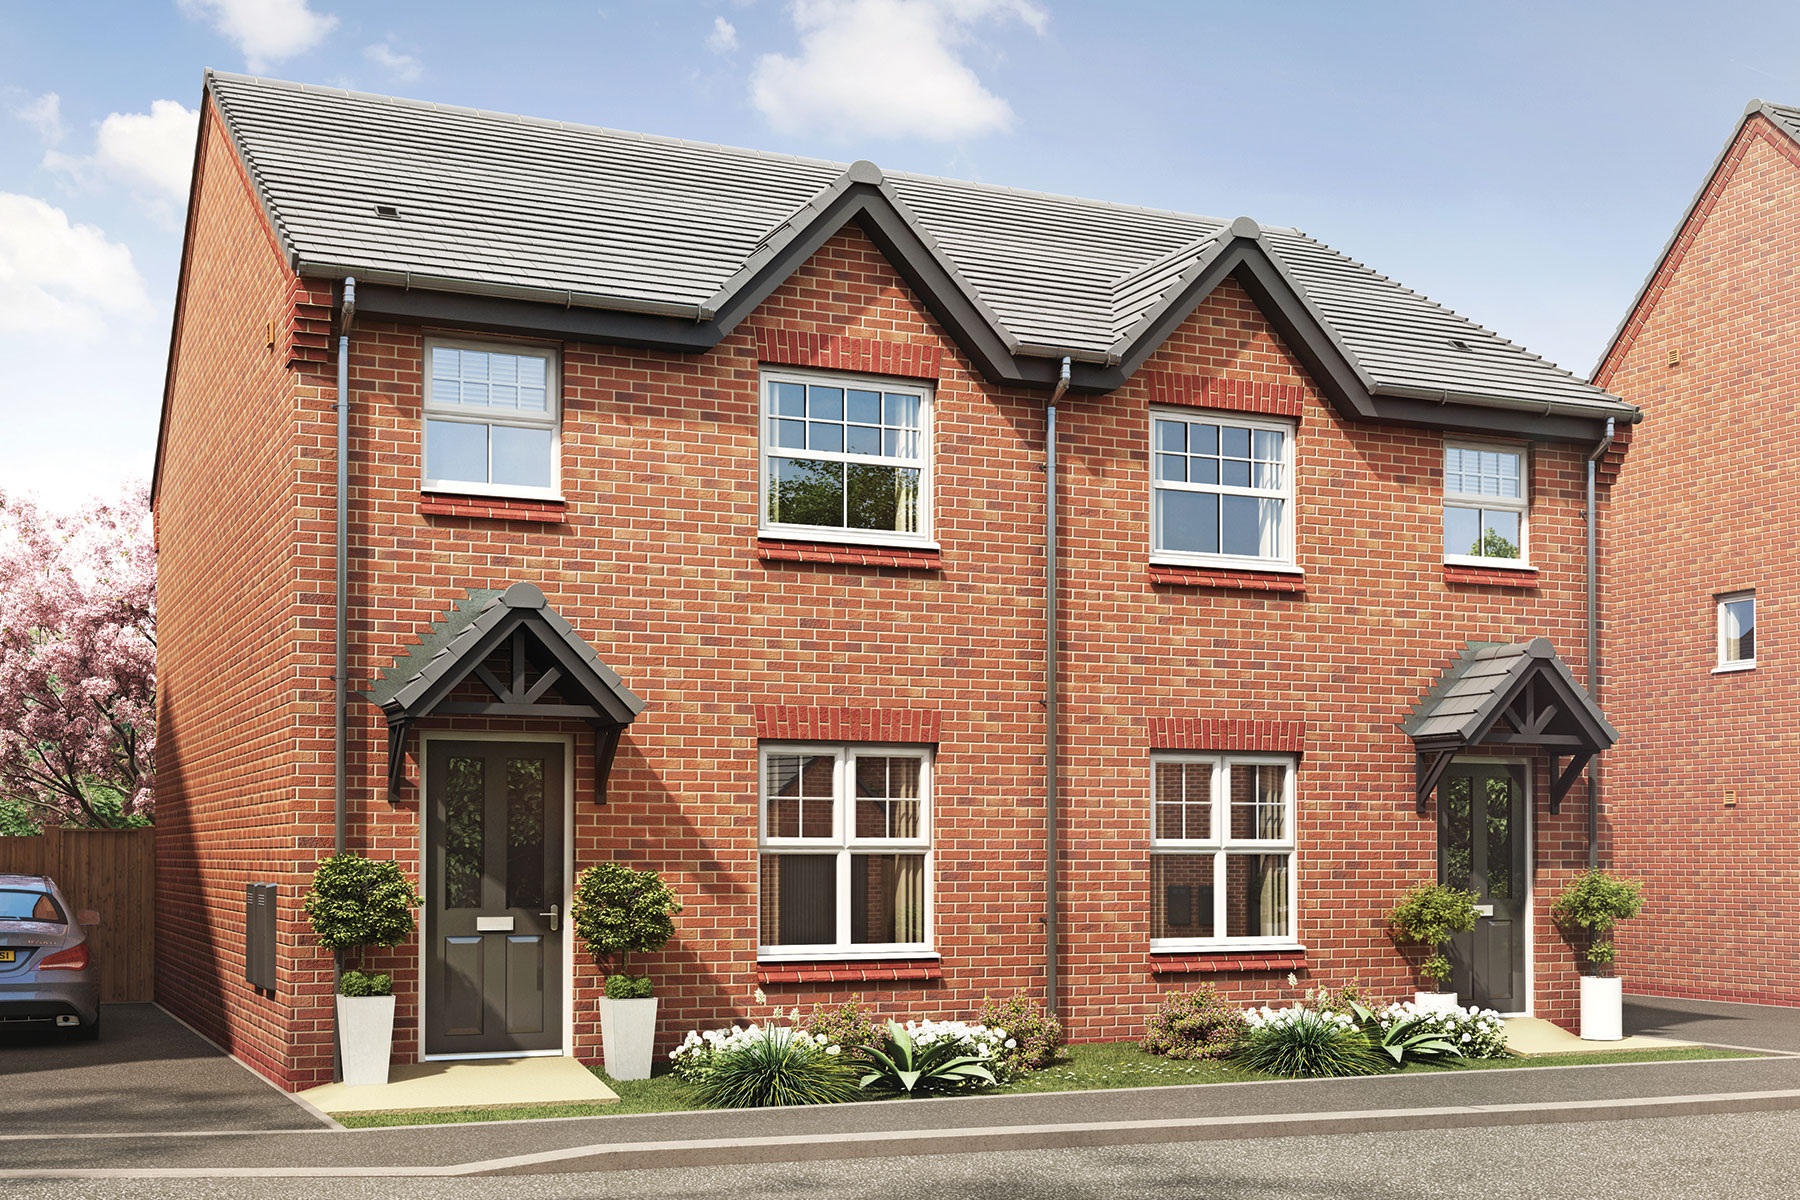 PA34-Gosford-V1-plots-24-25-Village-Heart-Variant